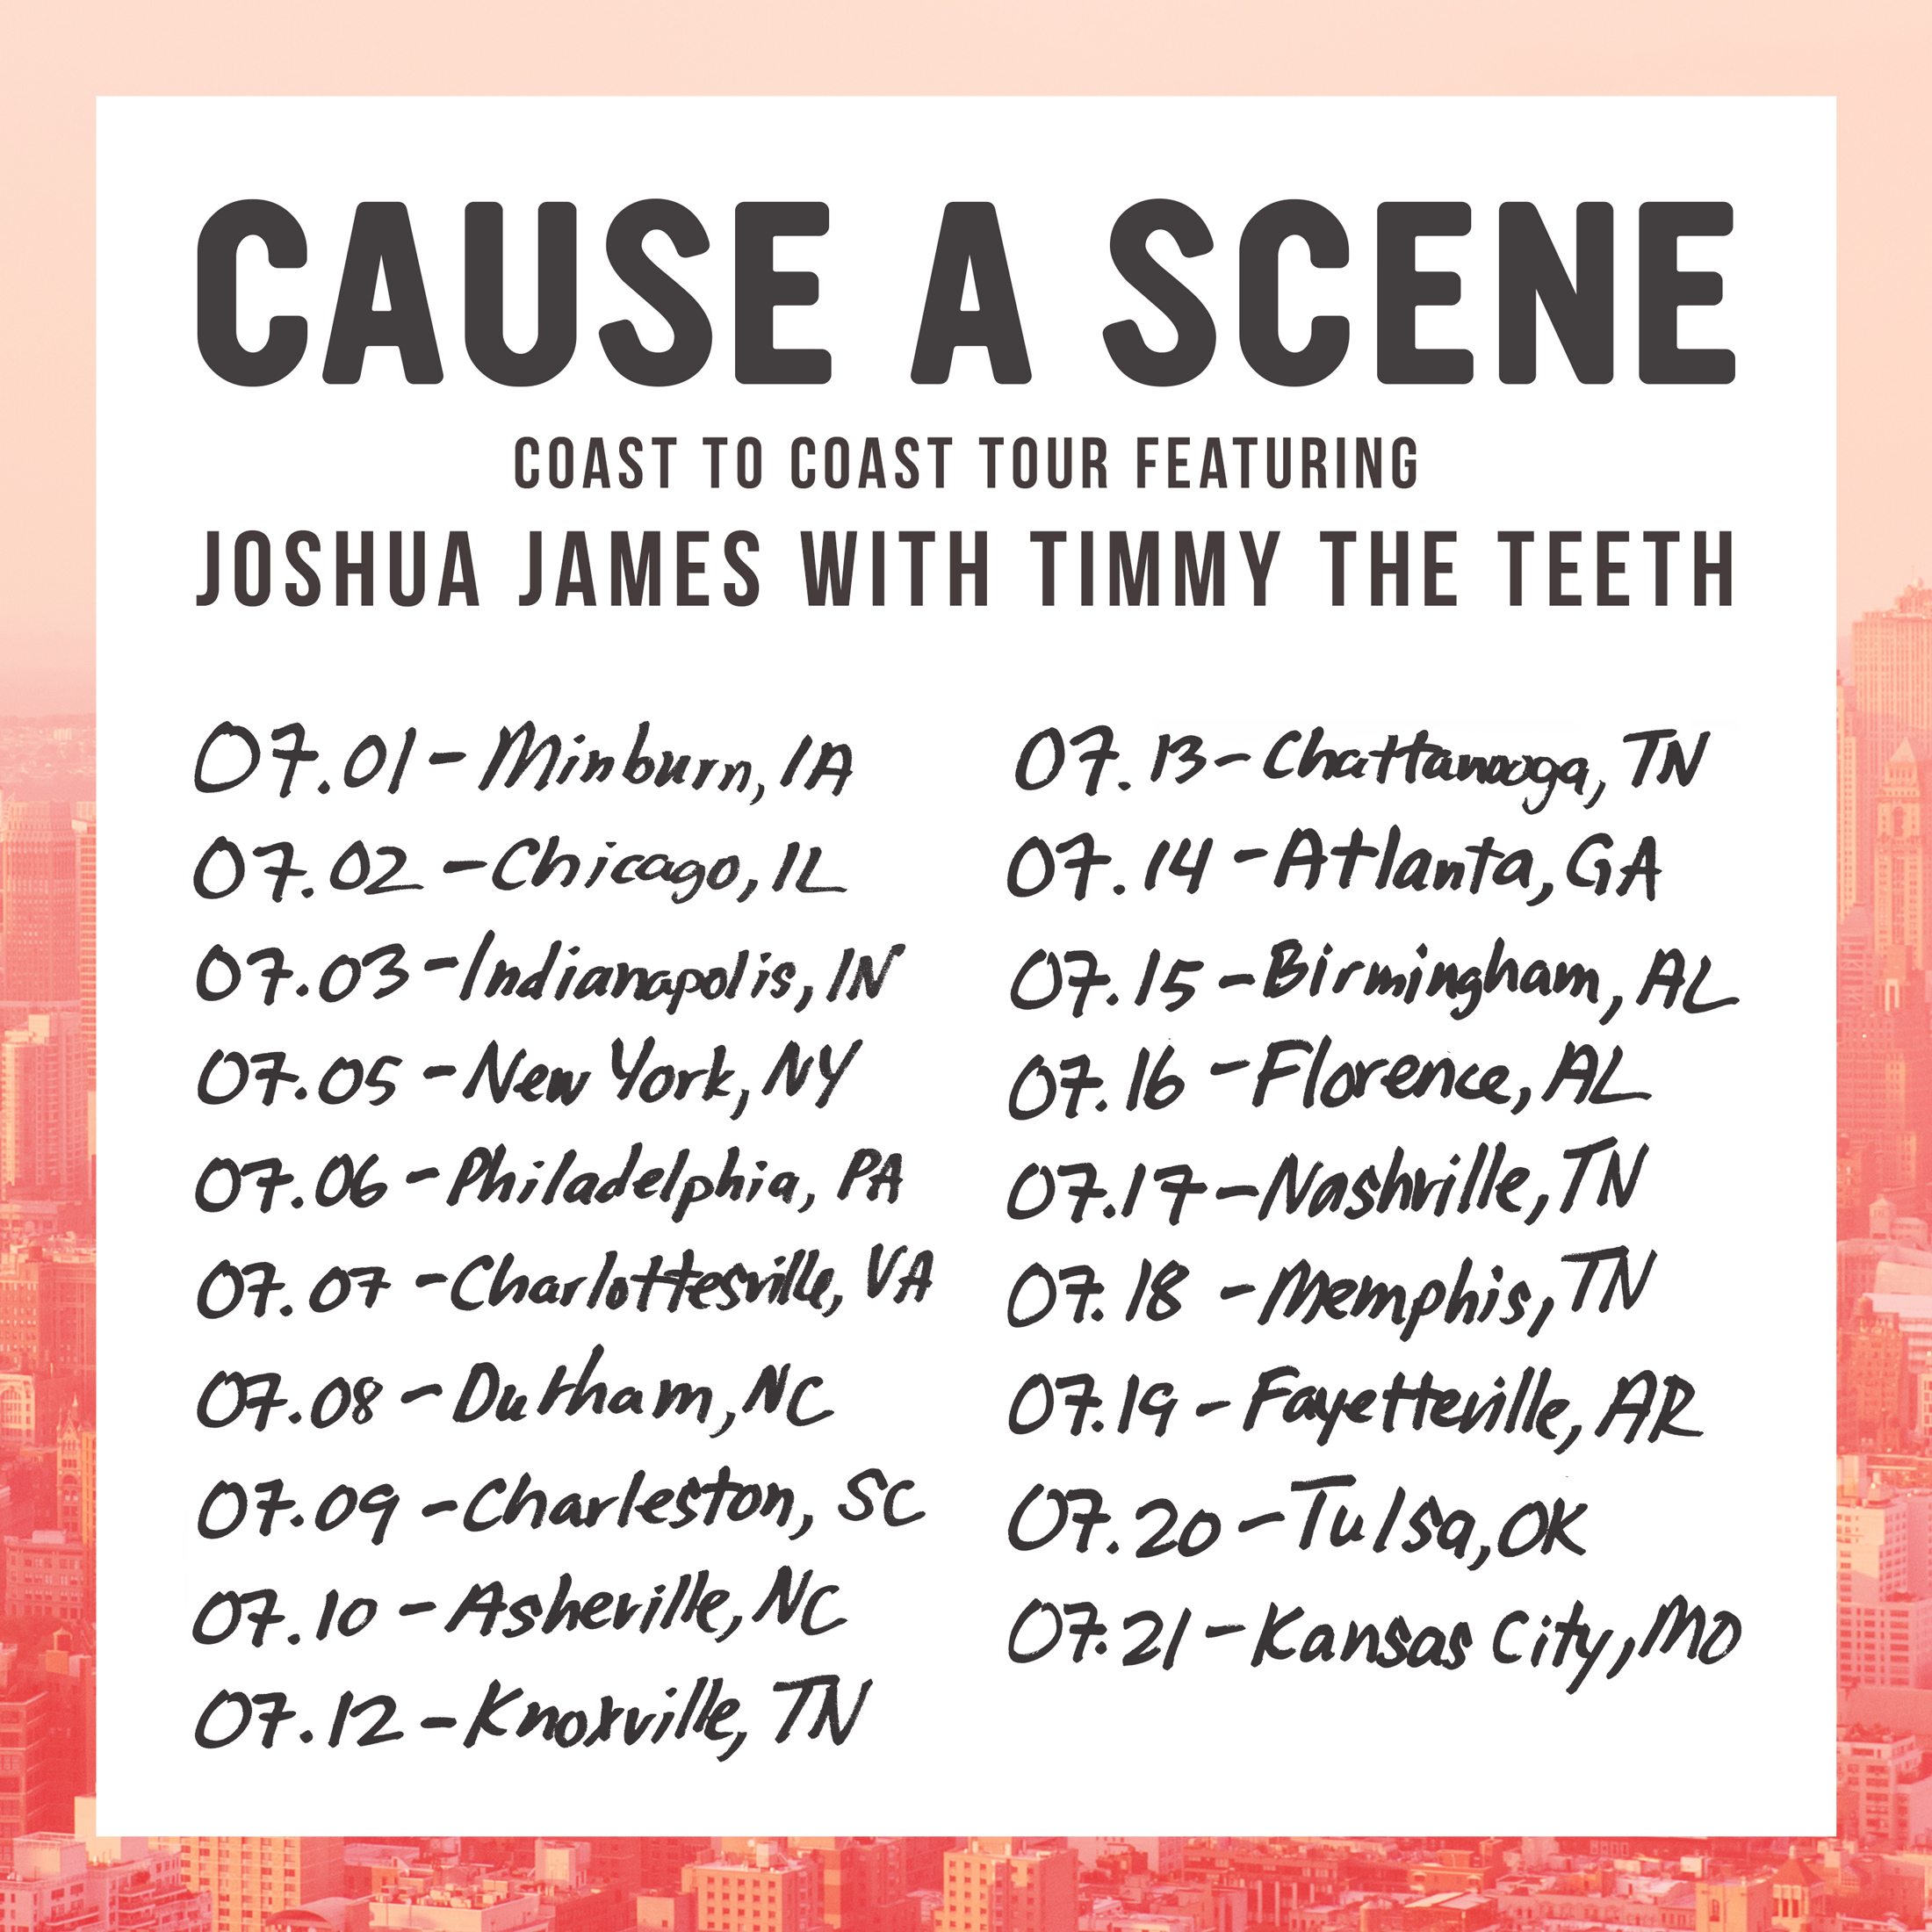 Cause A Scene Tour Announcement